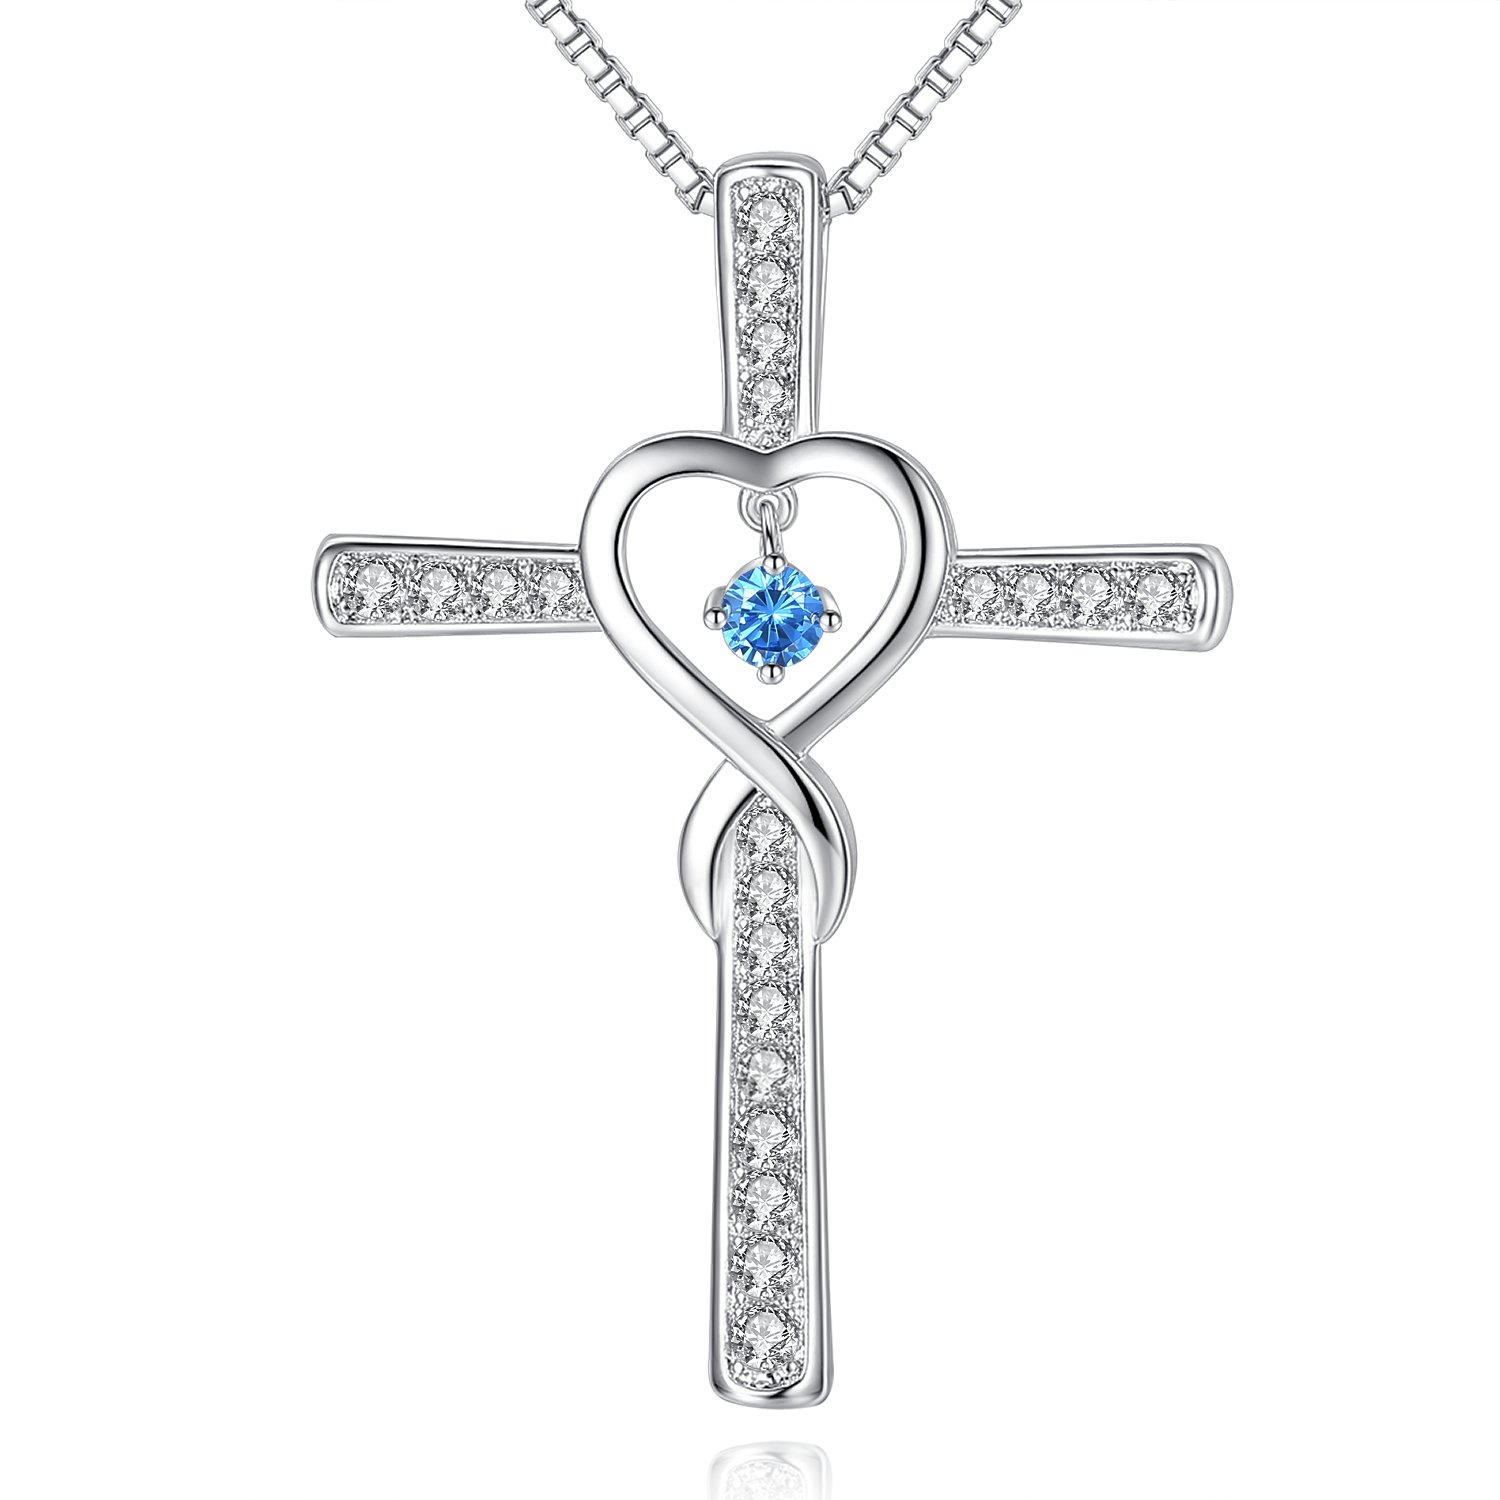 September Sapphire Birthstone Infinity Endless Love God Cross CZ Pendant Necklace, Birthday Jewelry Gifts for Women Girls Sister Wife Girlfriend Mom Mother Grandma Daughter Friendship Christmas Gifts